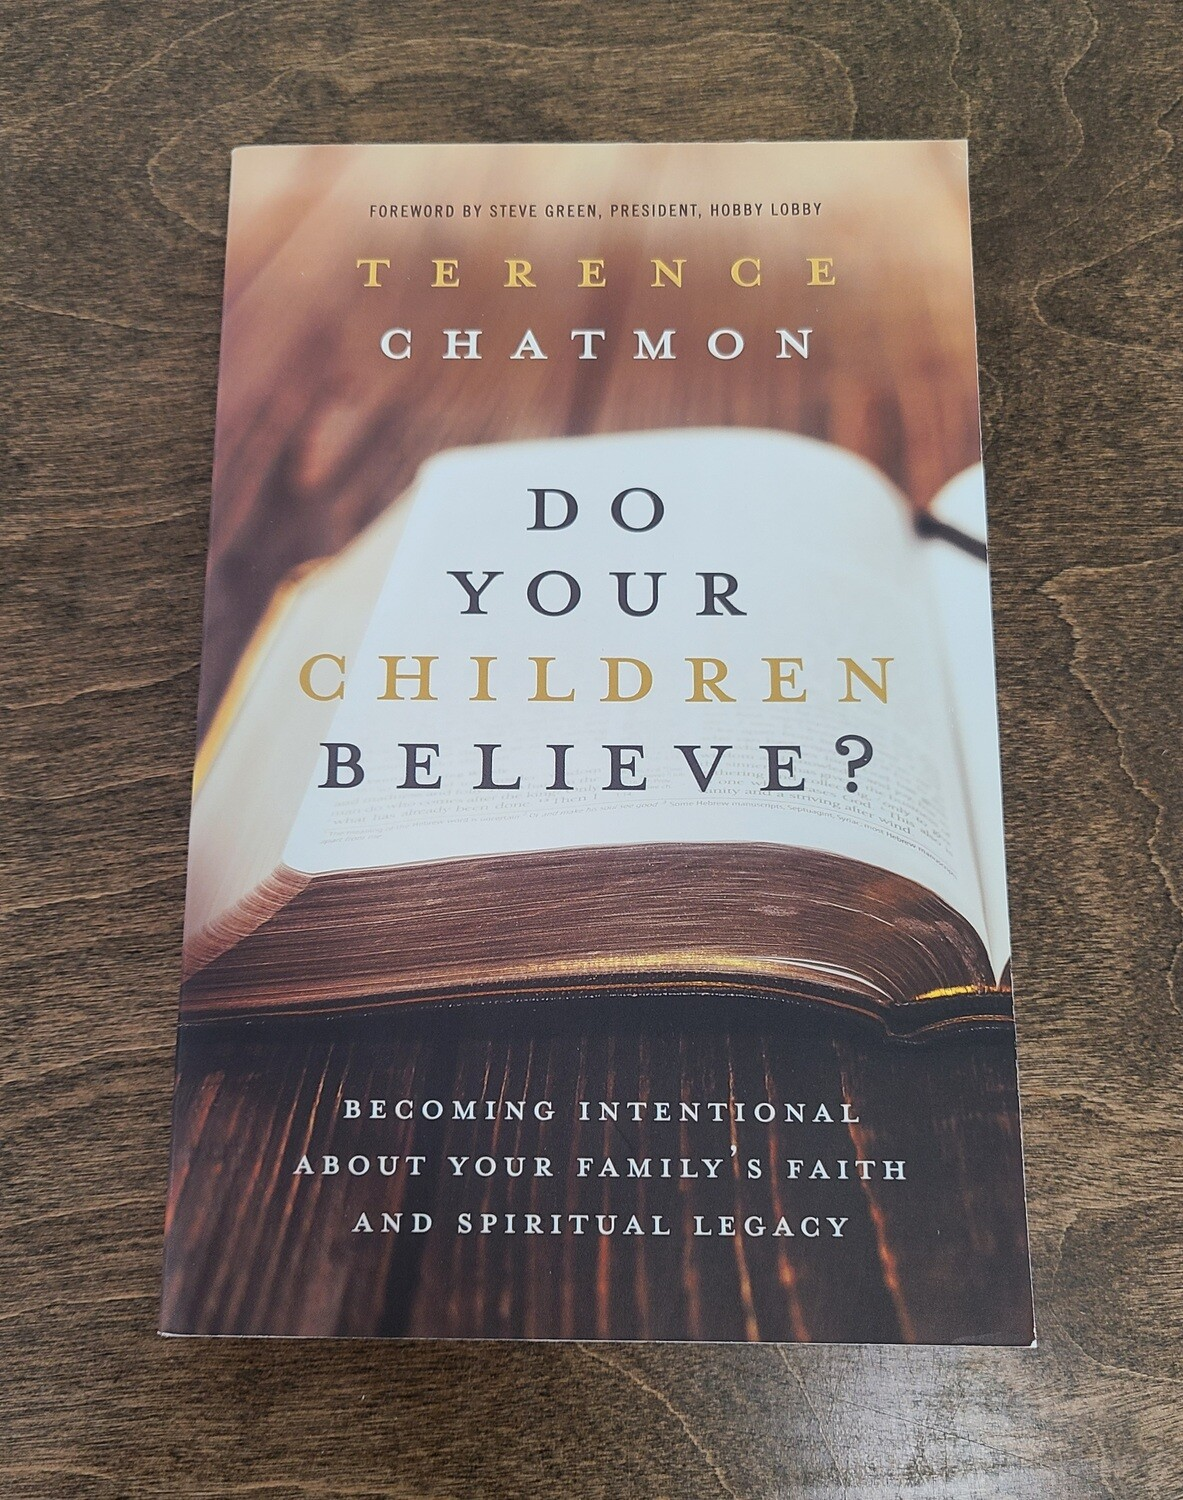 Do Your Children Believe? by Terence Chatmon